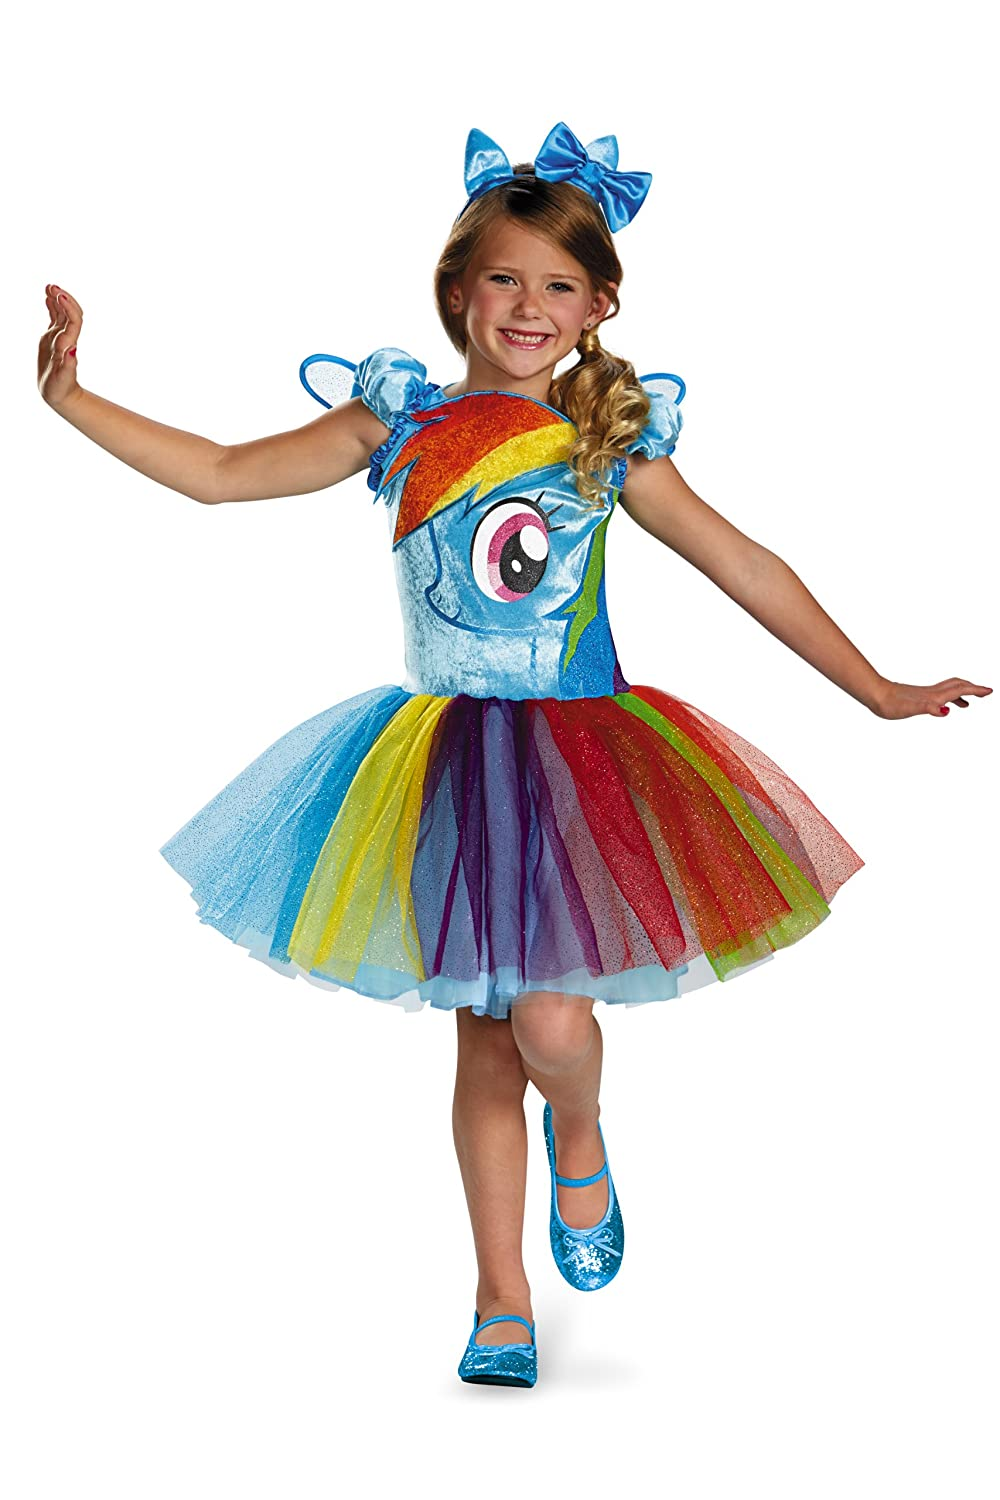 Disguise Hasbro's My Little Pony Rainbow Dash Tutu Prestige Girls Costume, Small/4-6x